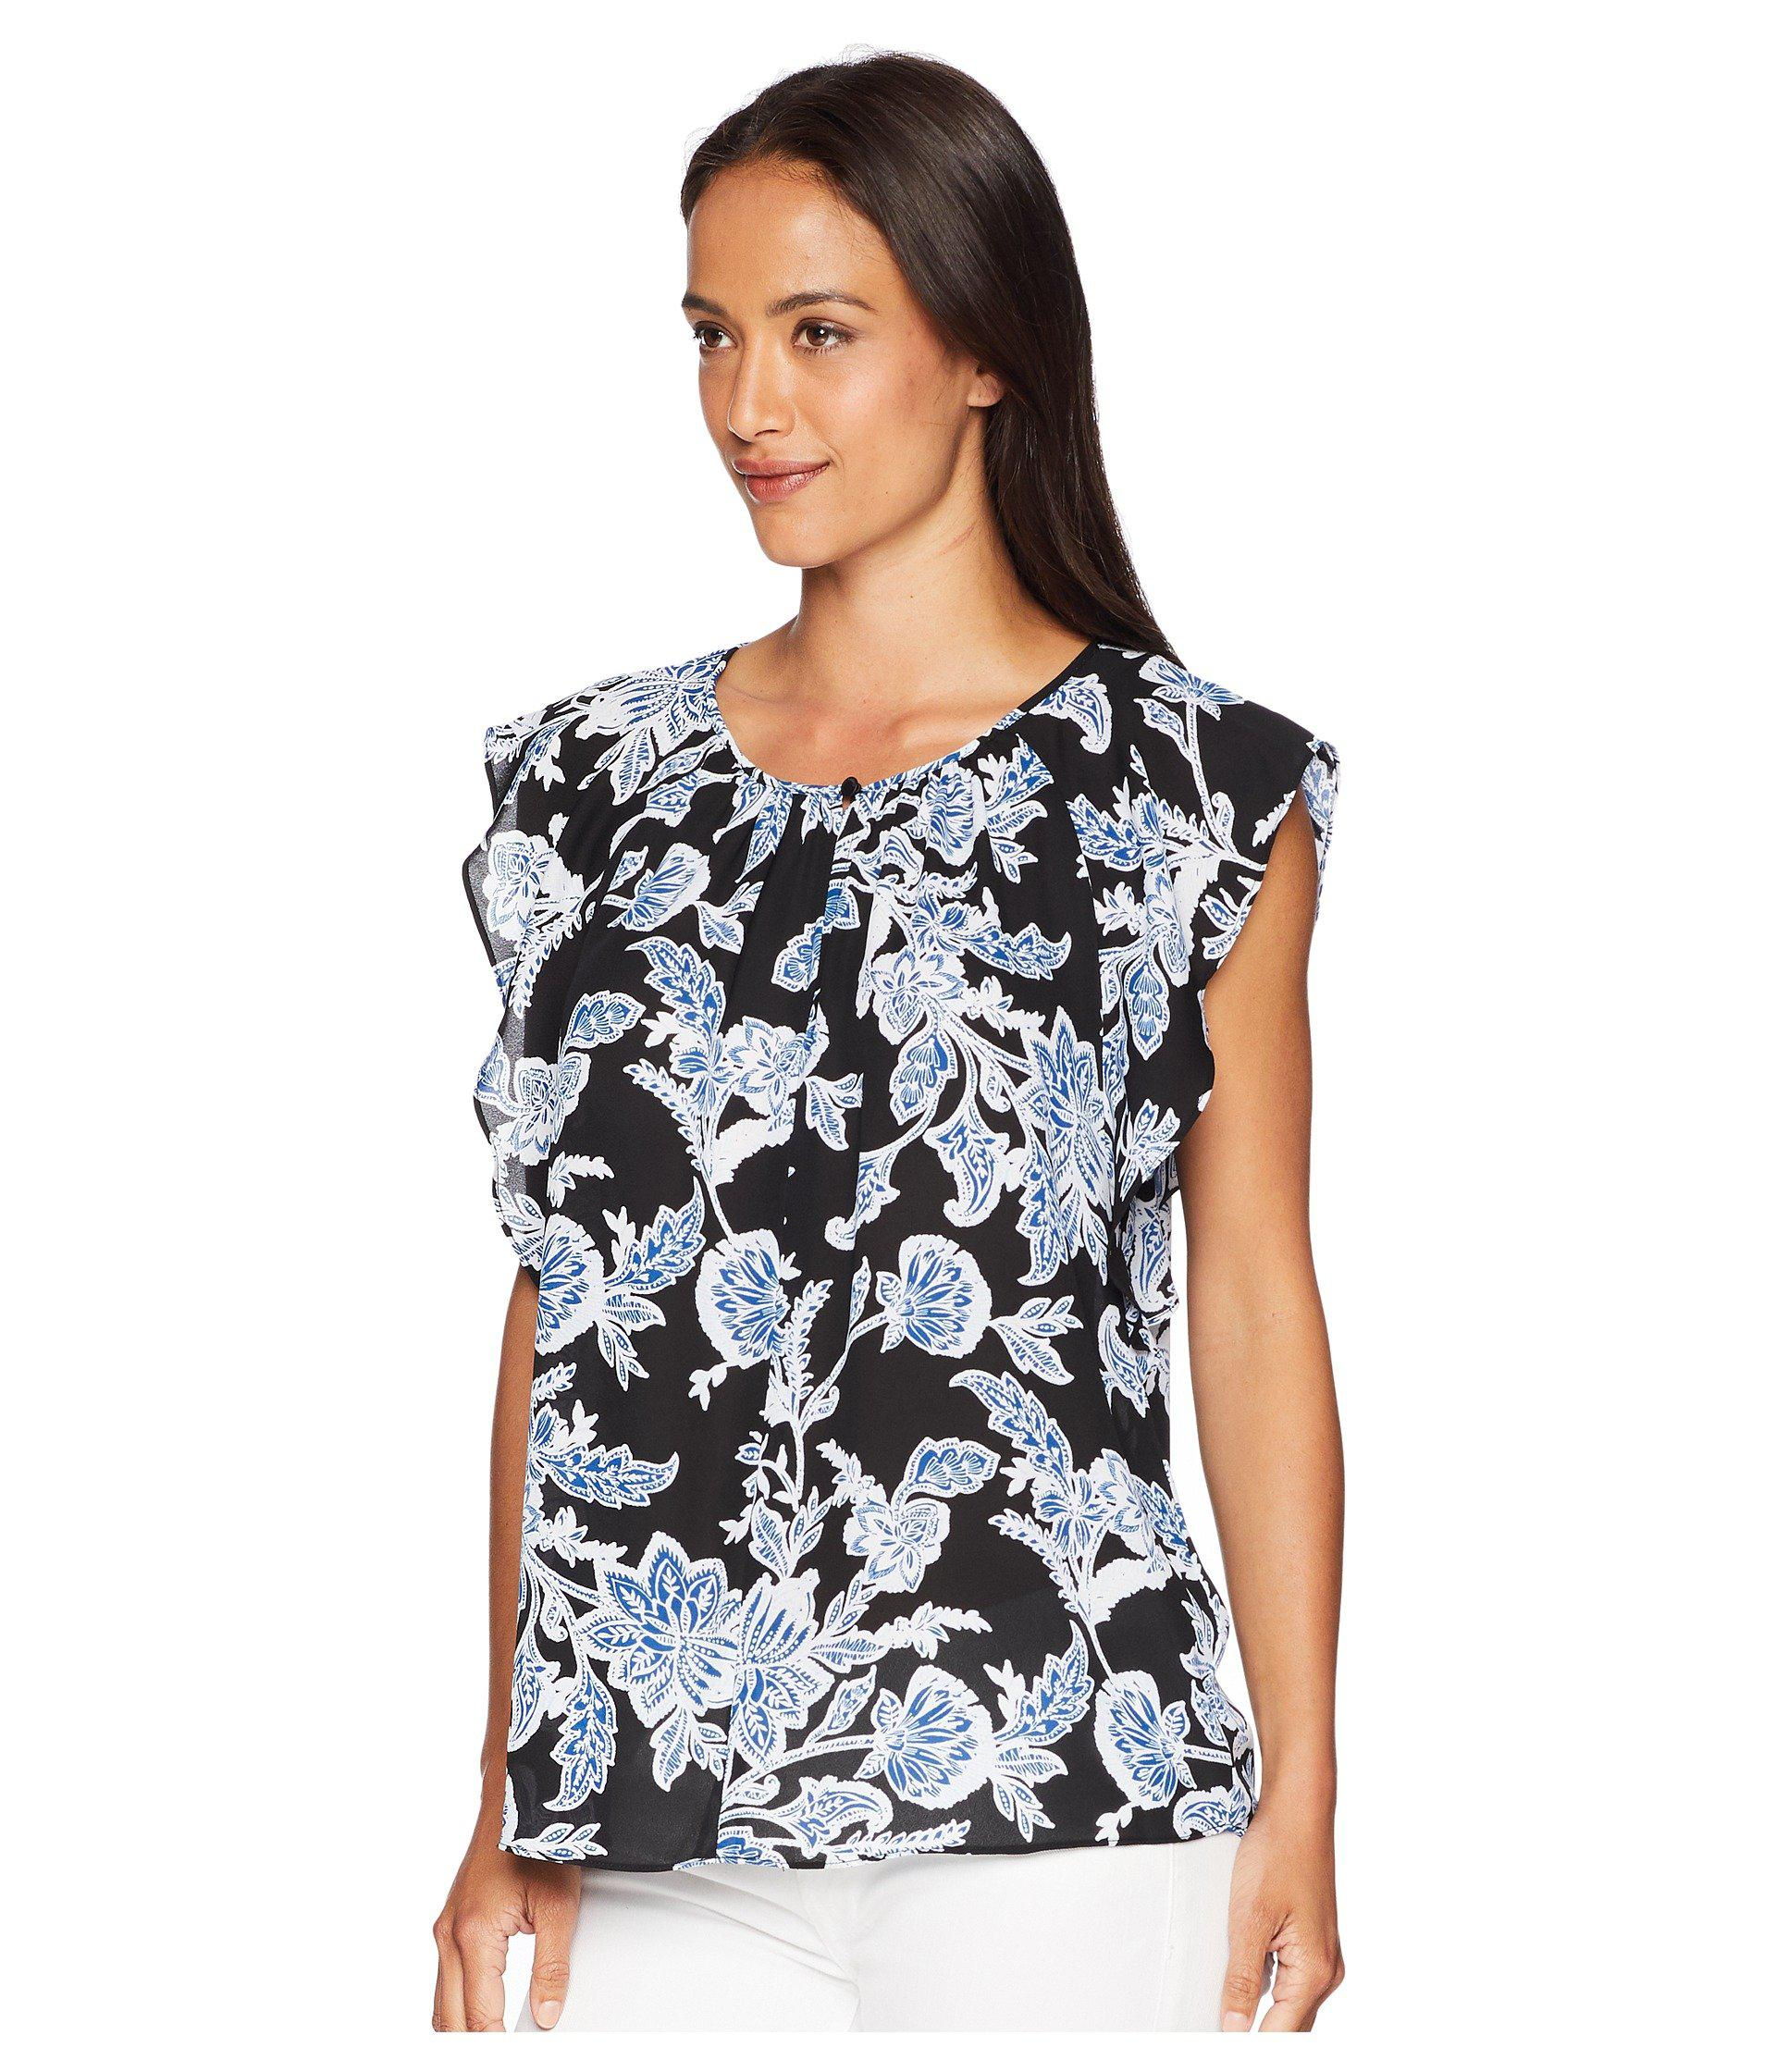 28221d83ef20f Lyst - Vince Camuto Flutter Sleeve Woodblock Floral Keyhole Blouse in Black  - Save 57.4468085106383%